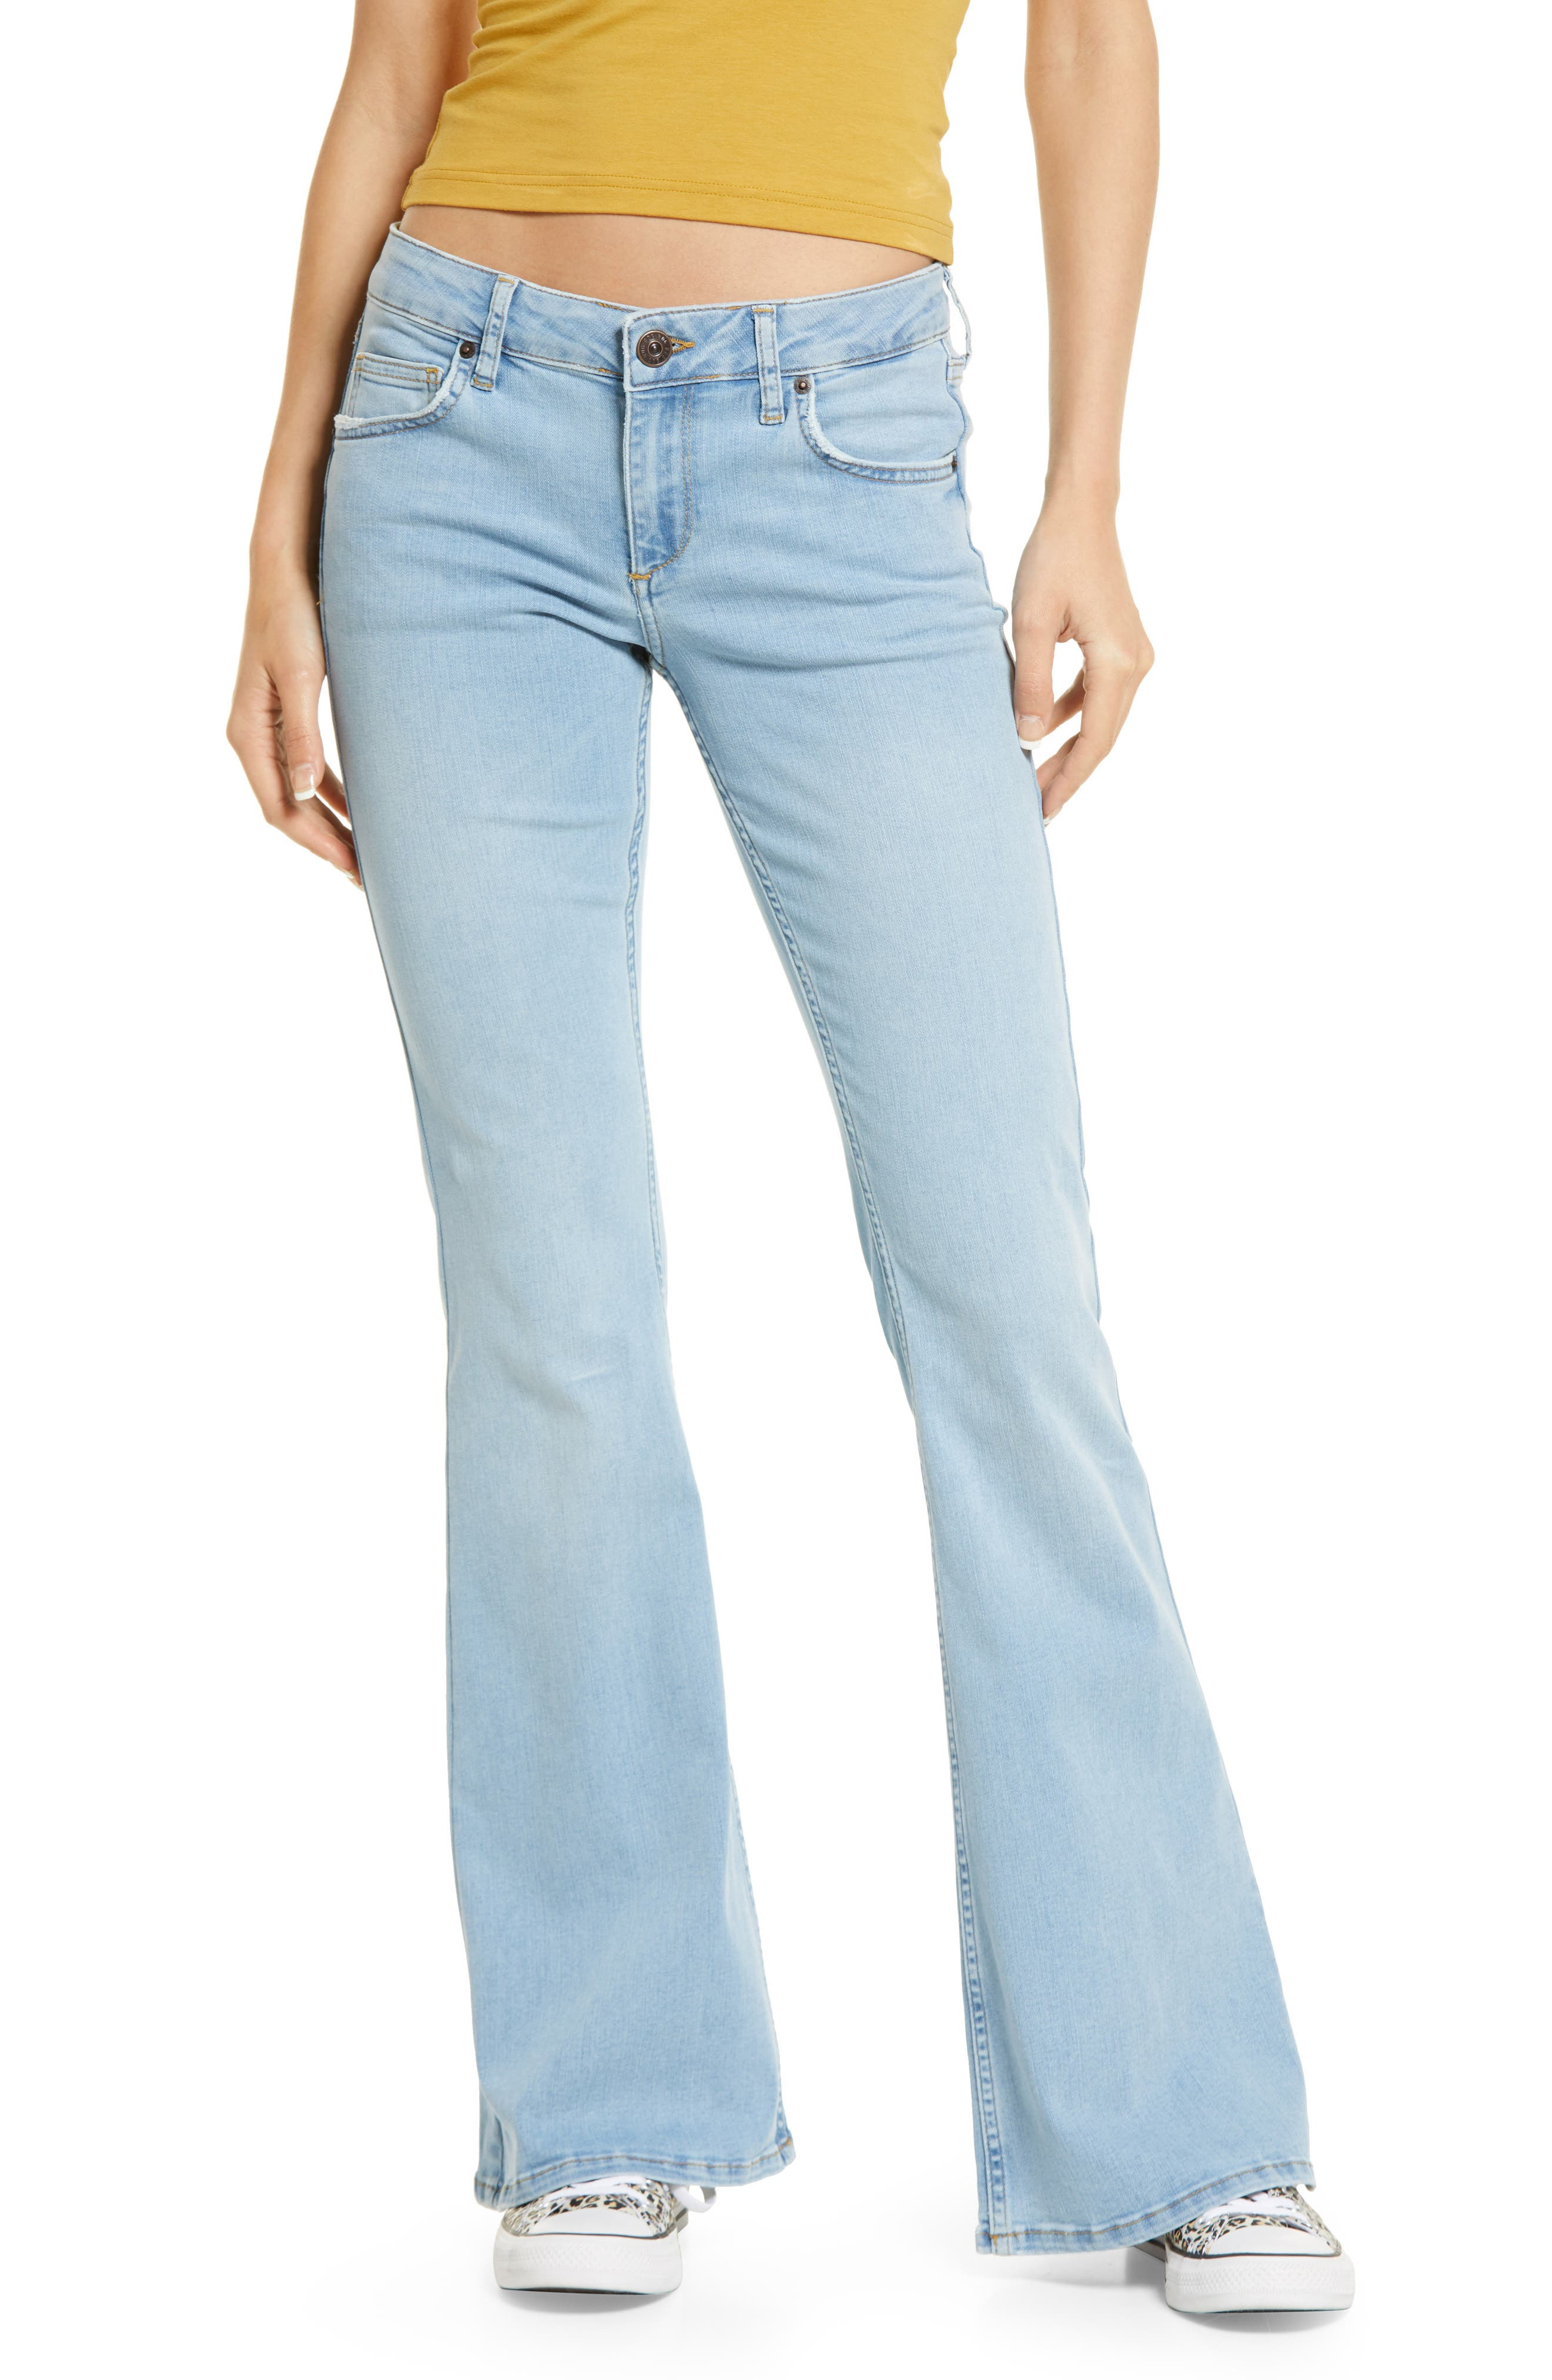 Women's BDG Urban Outfitters Low Rise Flare Jeans